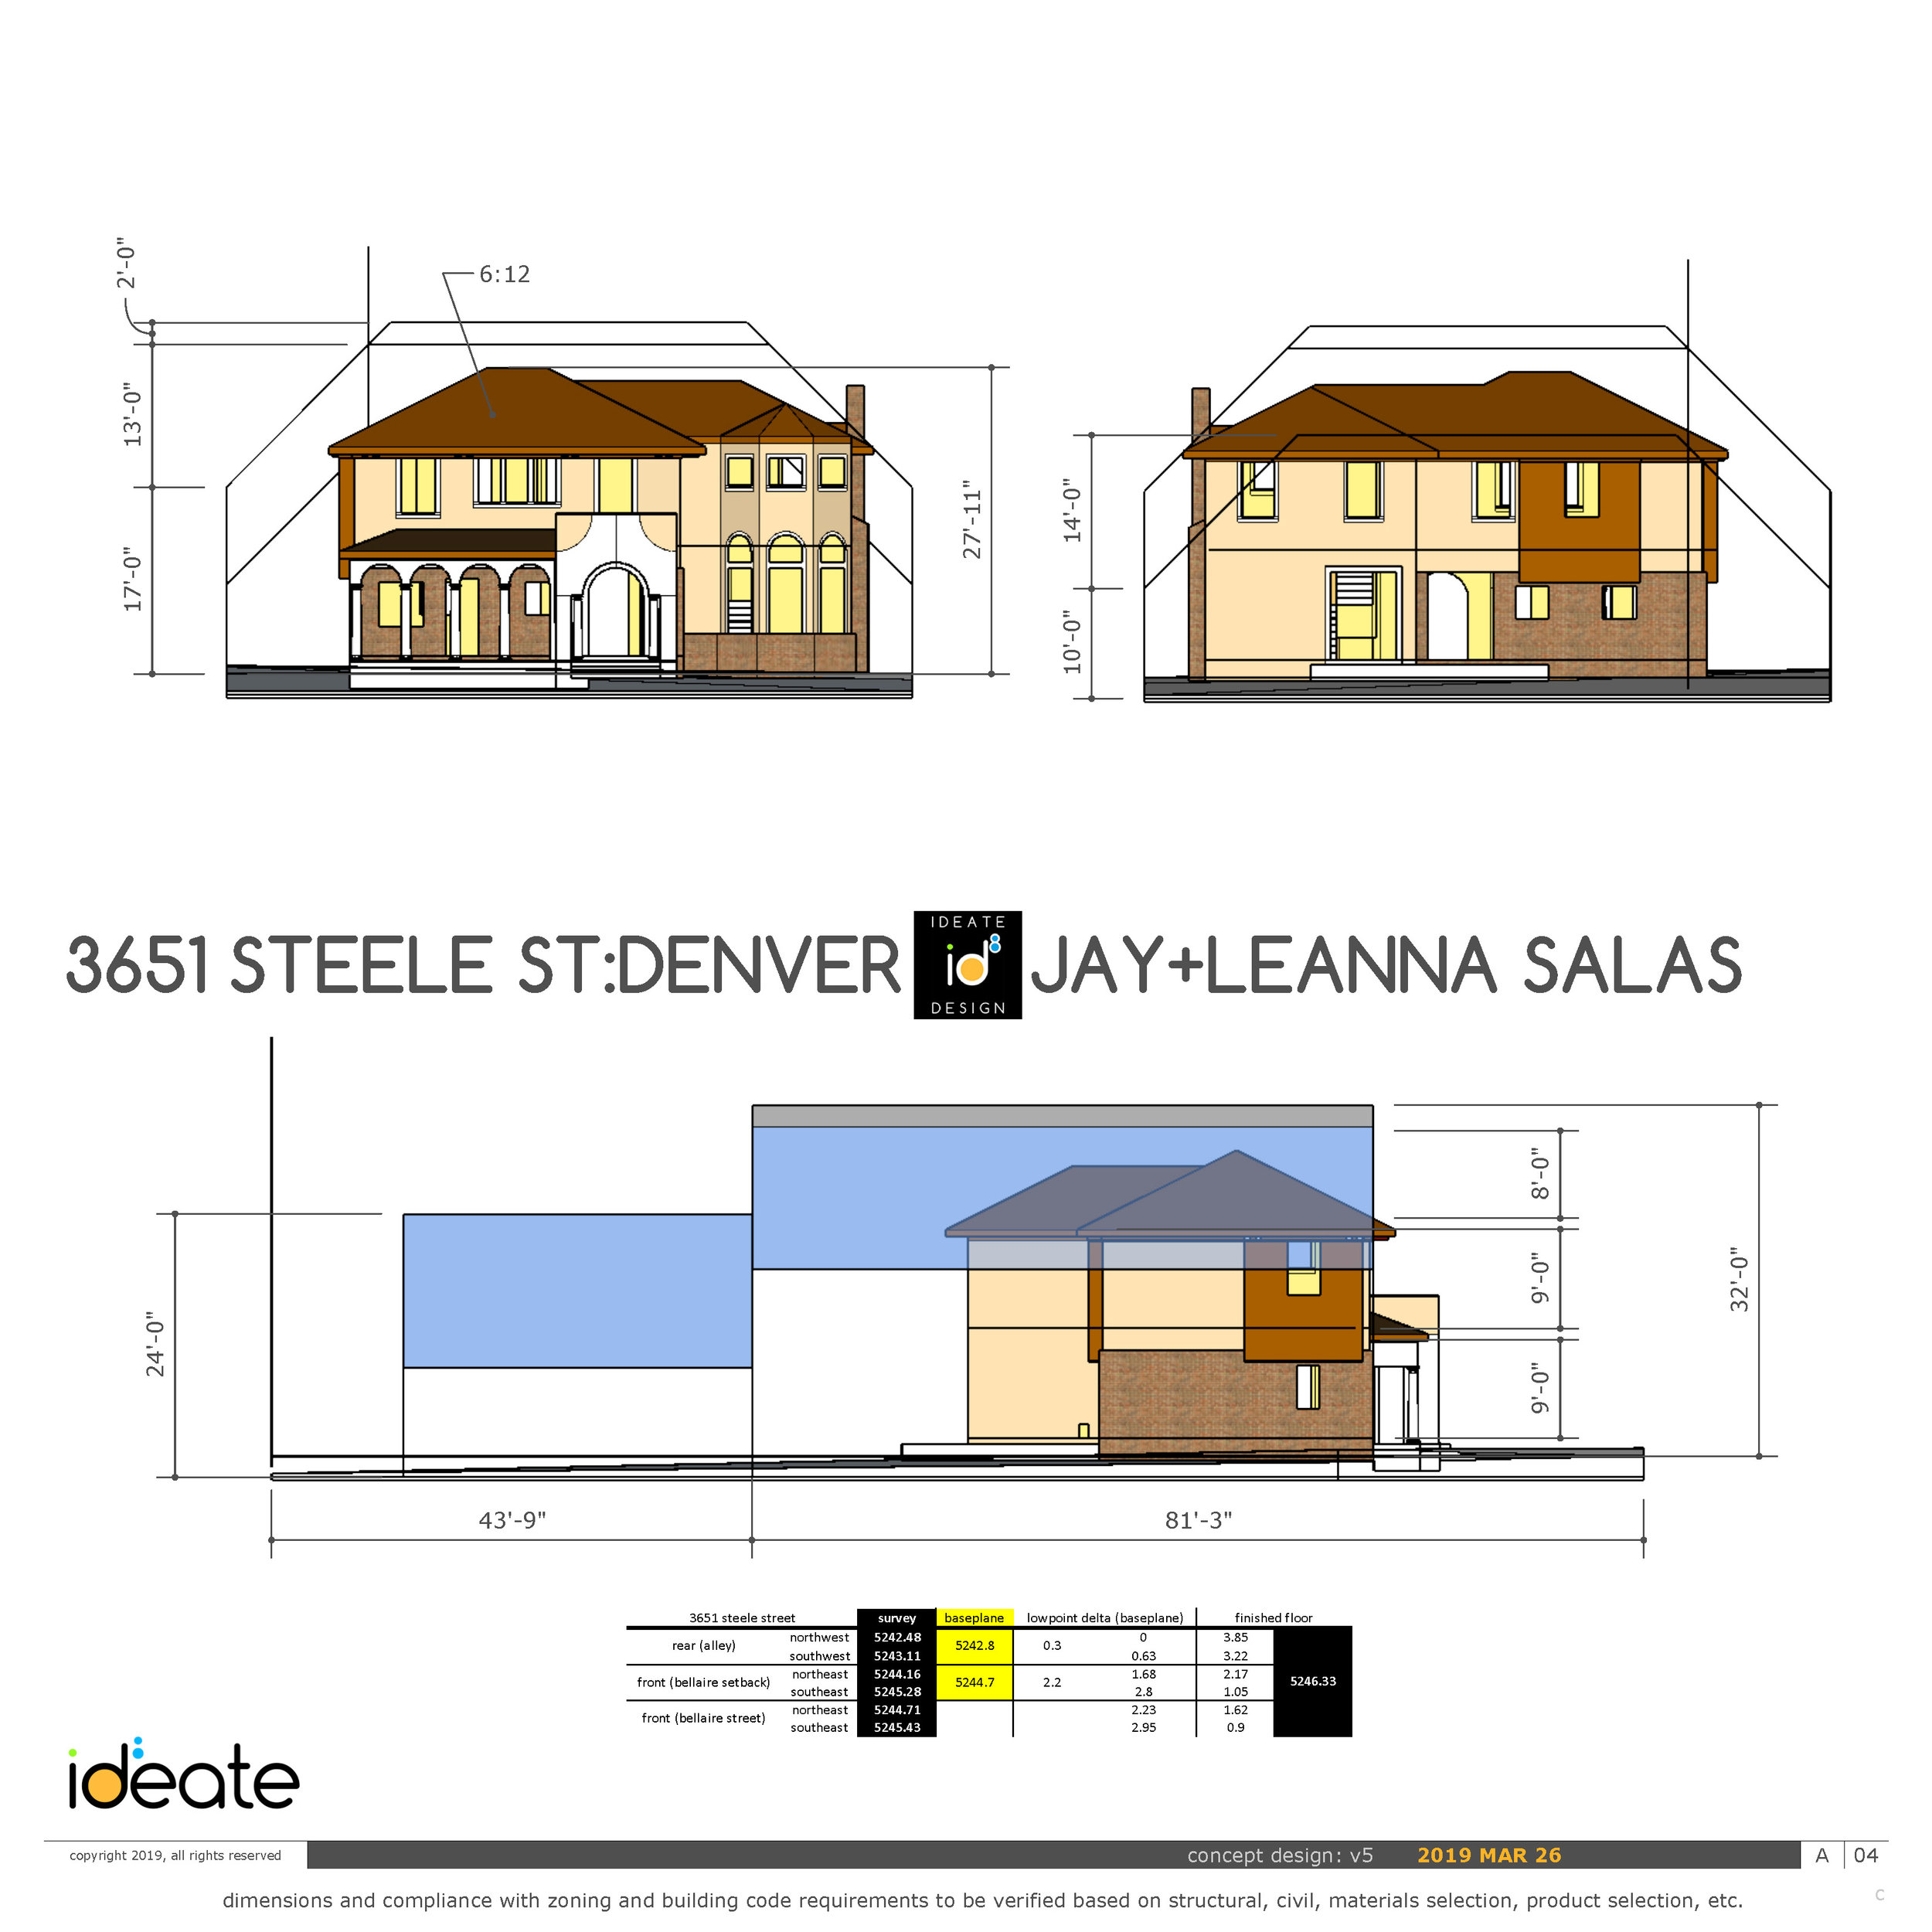 2019_03mar25 salas LAYOUT v6_Page_4.jpg